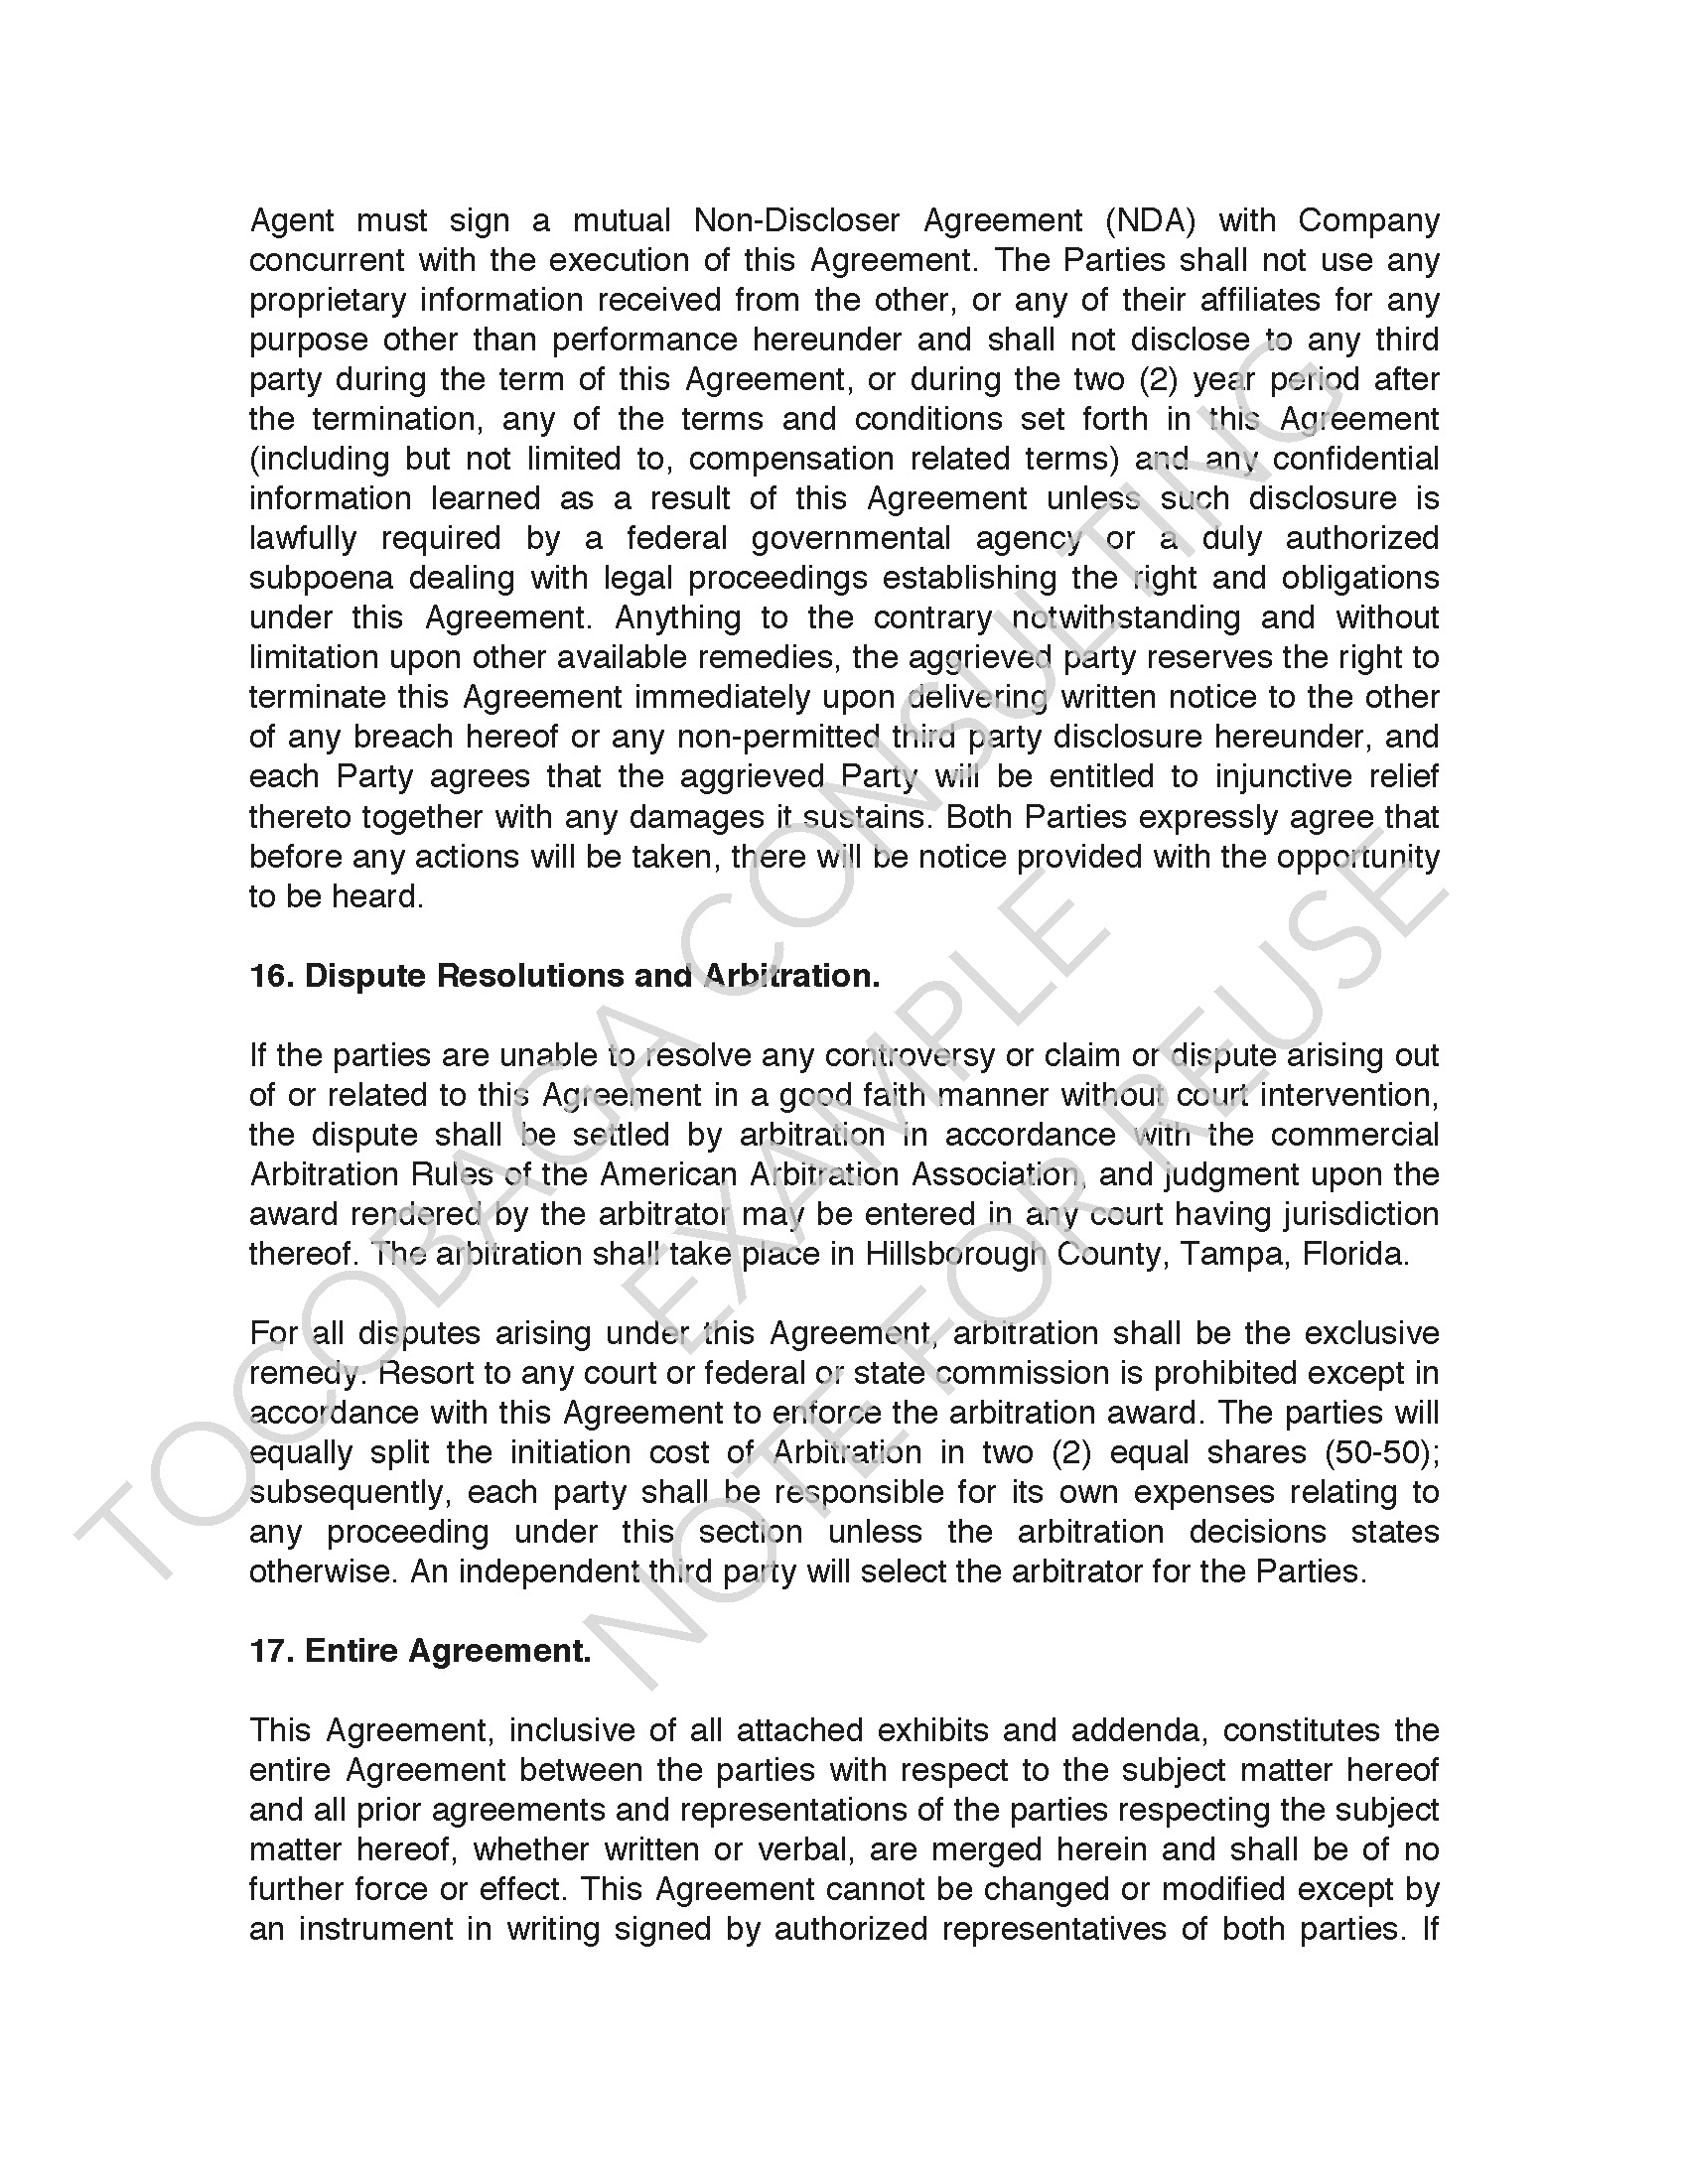 Company Services Agreement EXAMPLE_Page_07.jpg